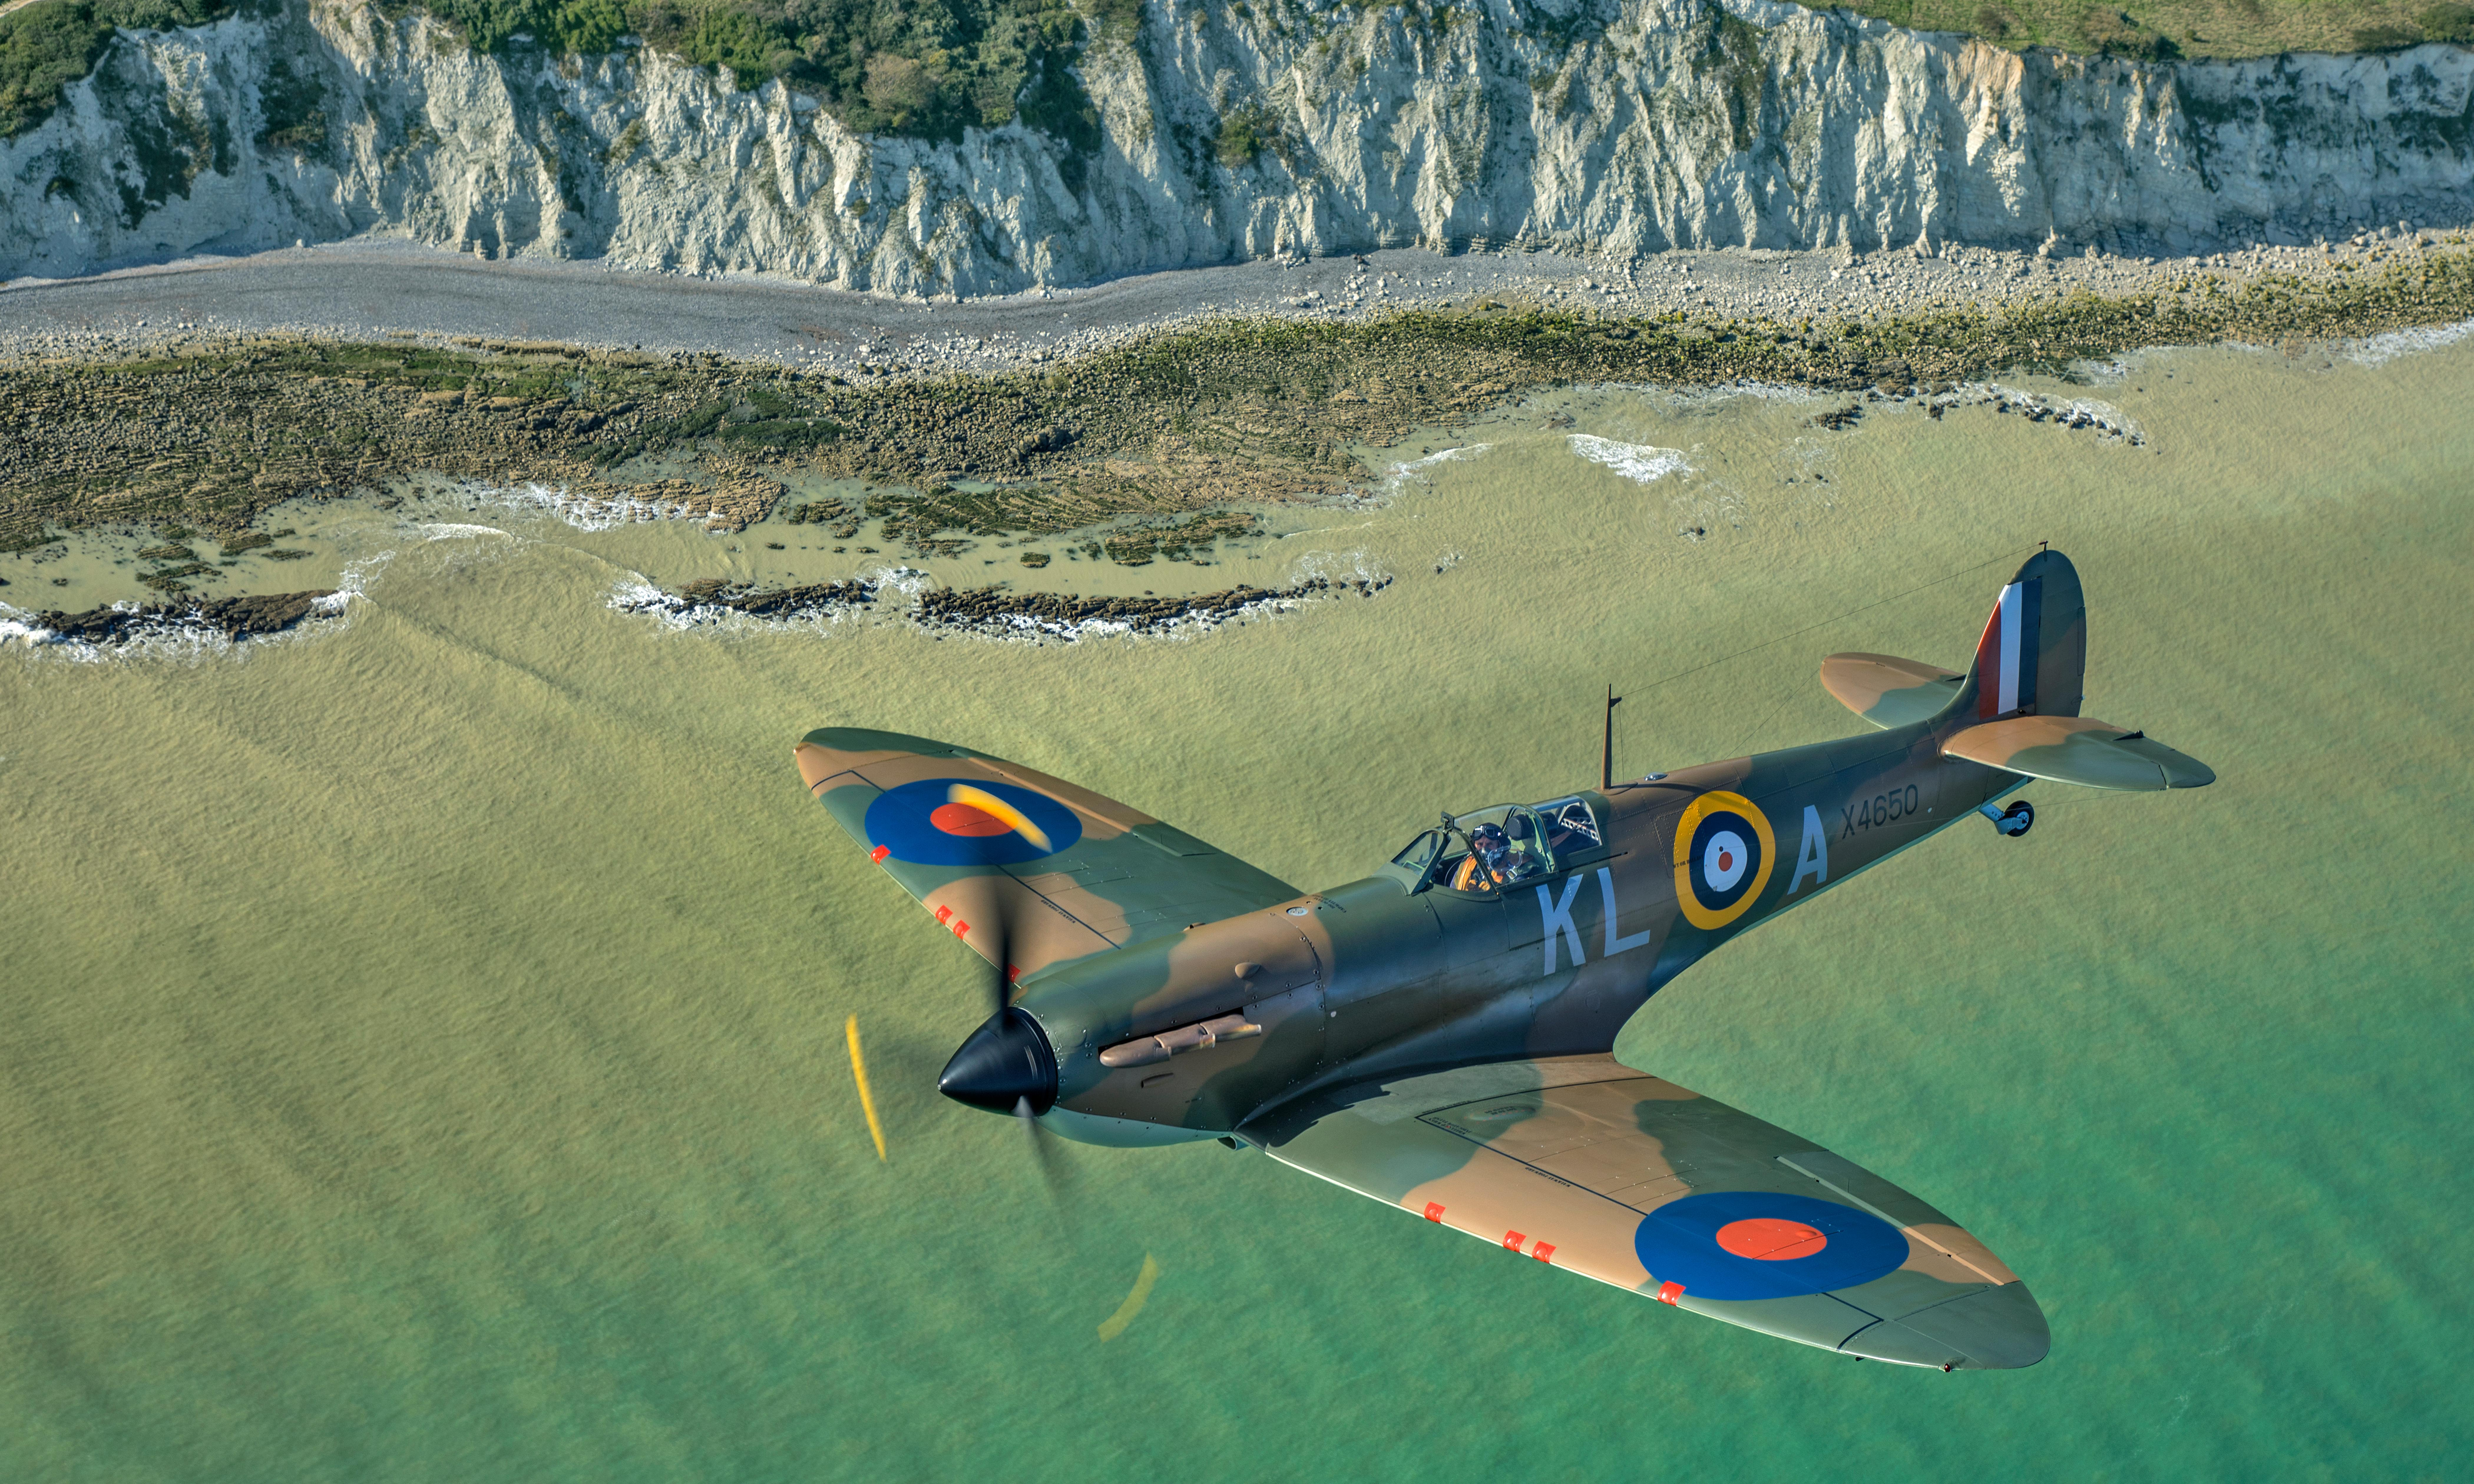 Spitfire review – stirring salute to the plane that ruled the skies